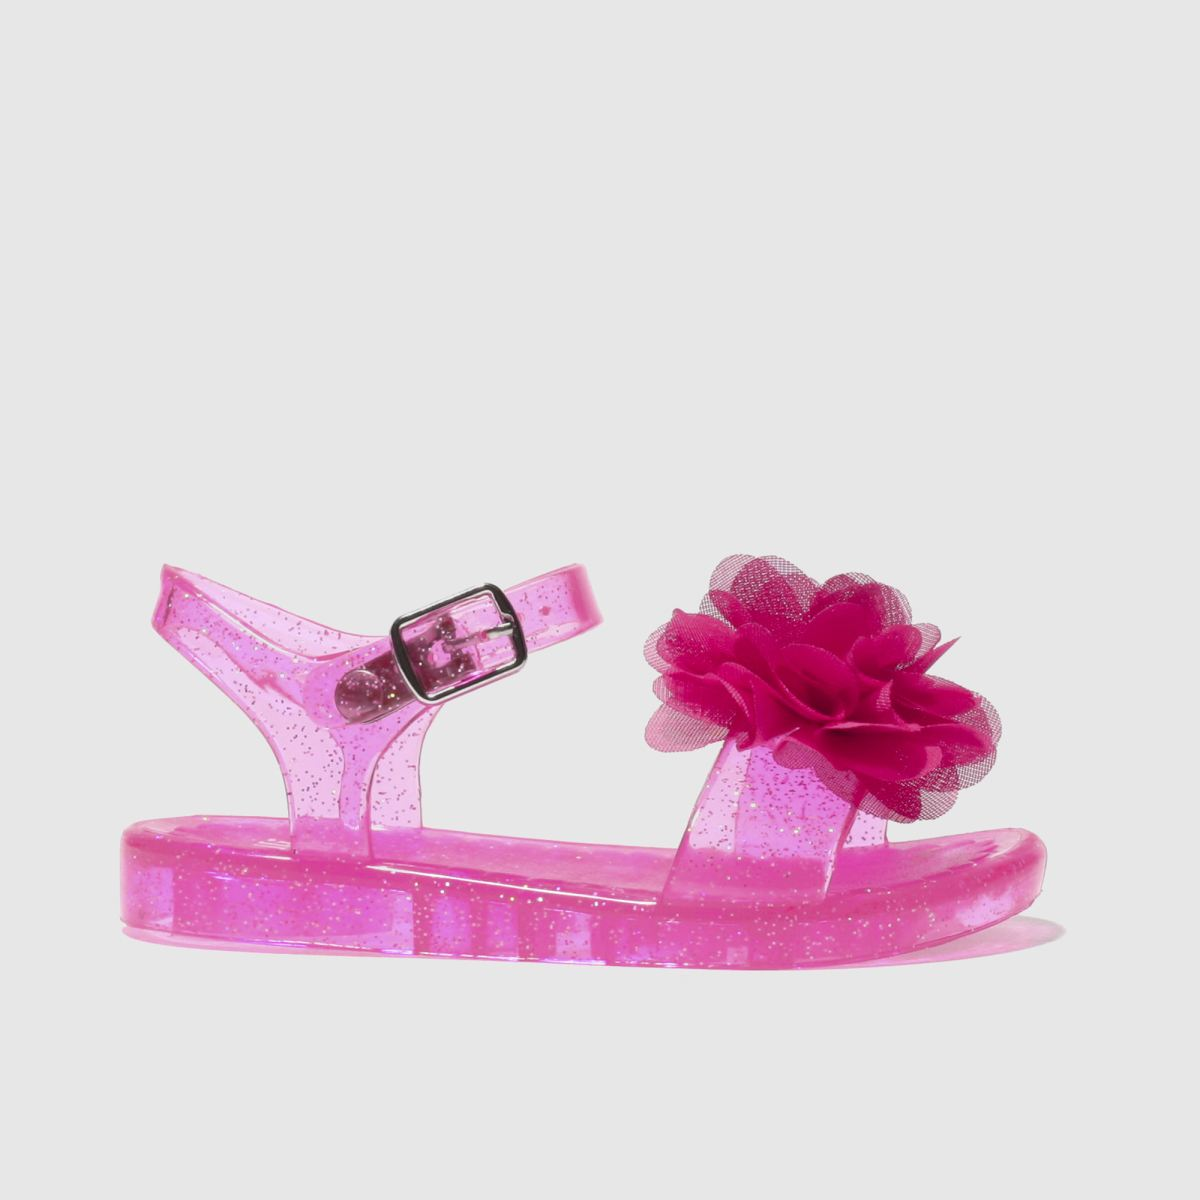 Lelli Kelly Pink Fiore Sandals Toddler